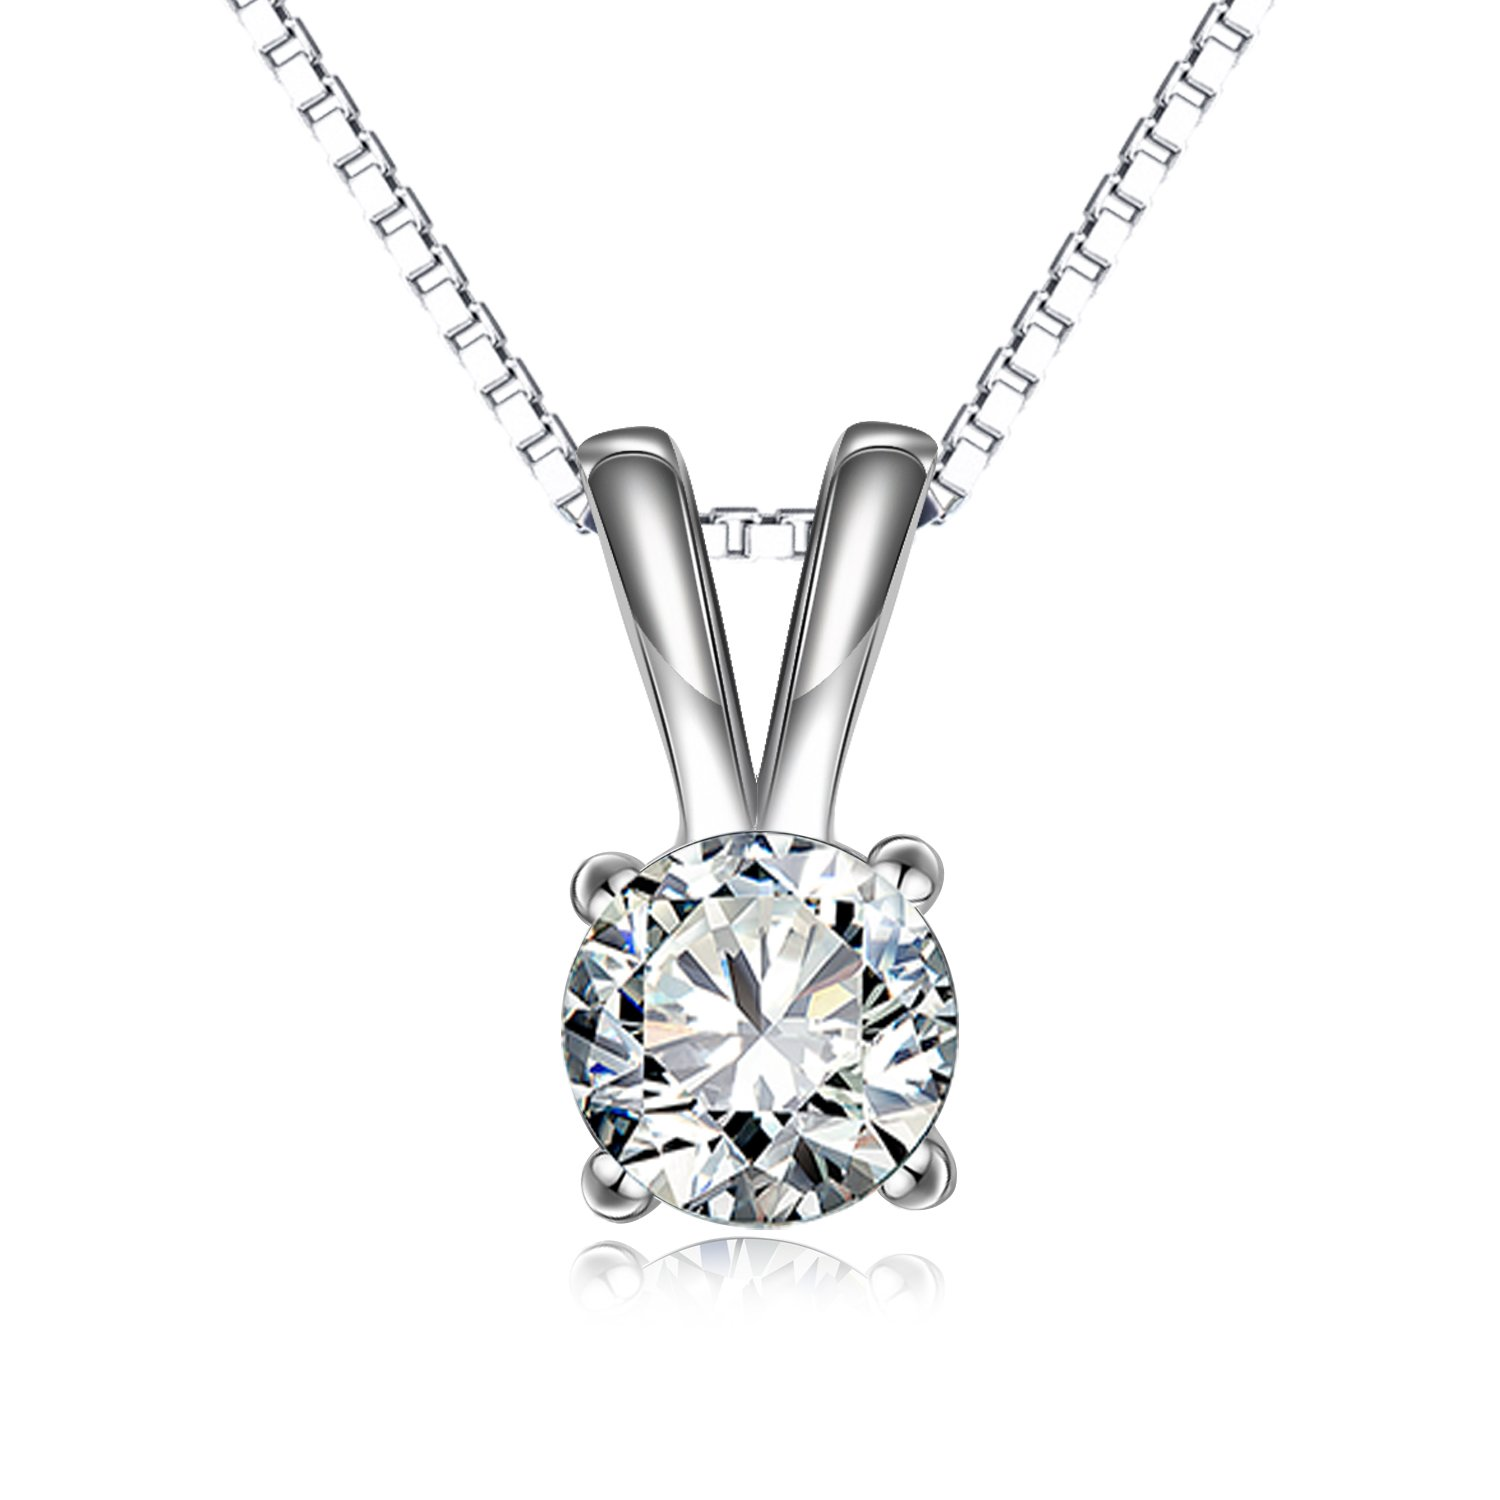 LONAGO 2.0 Carats 925 Sterling Silver Clear Round Cut Cubic Zirconia CZ Pendant Necklace 18''